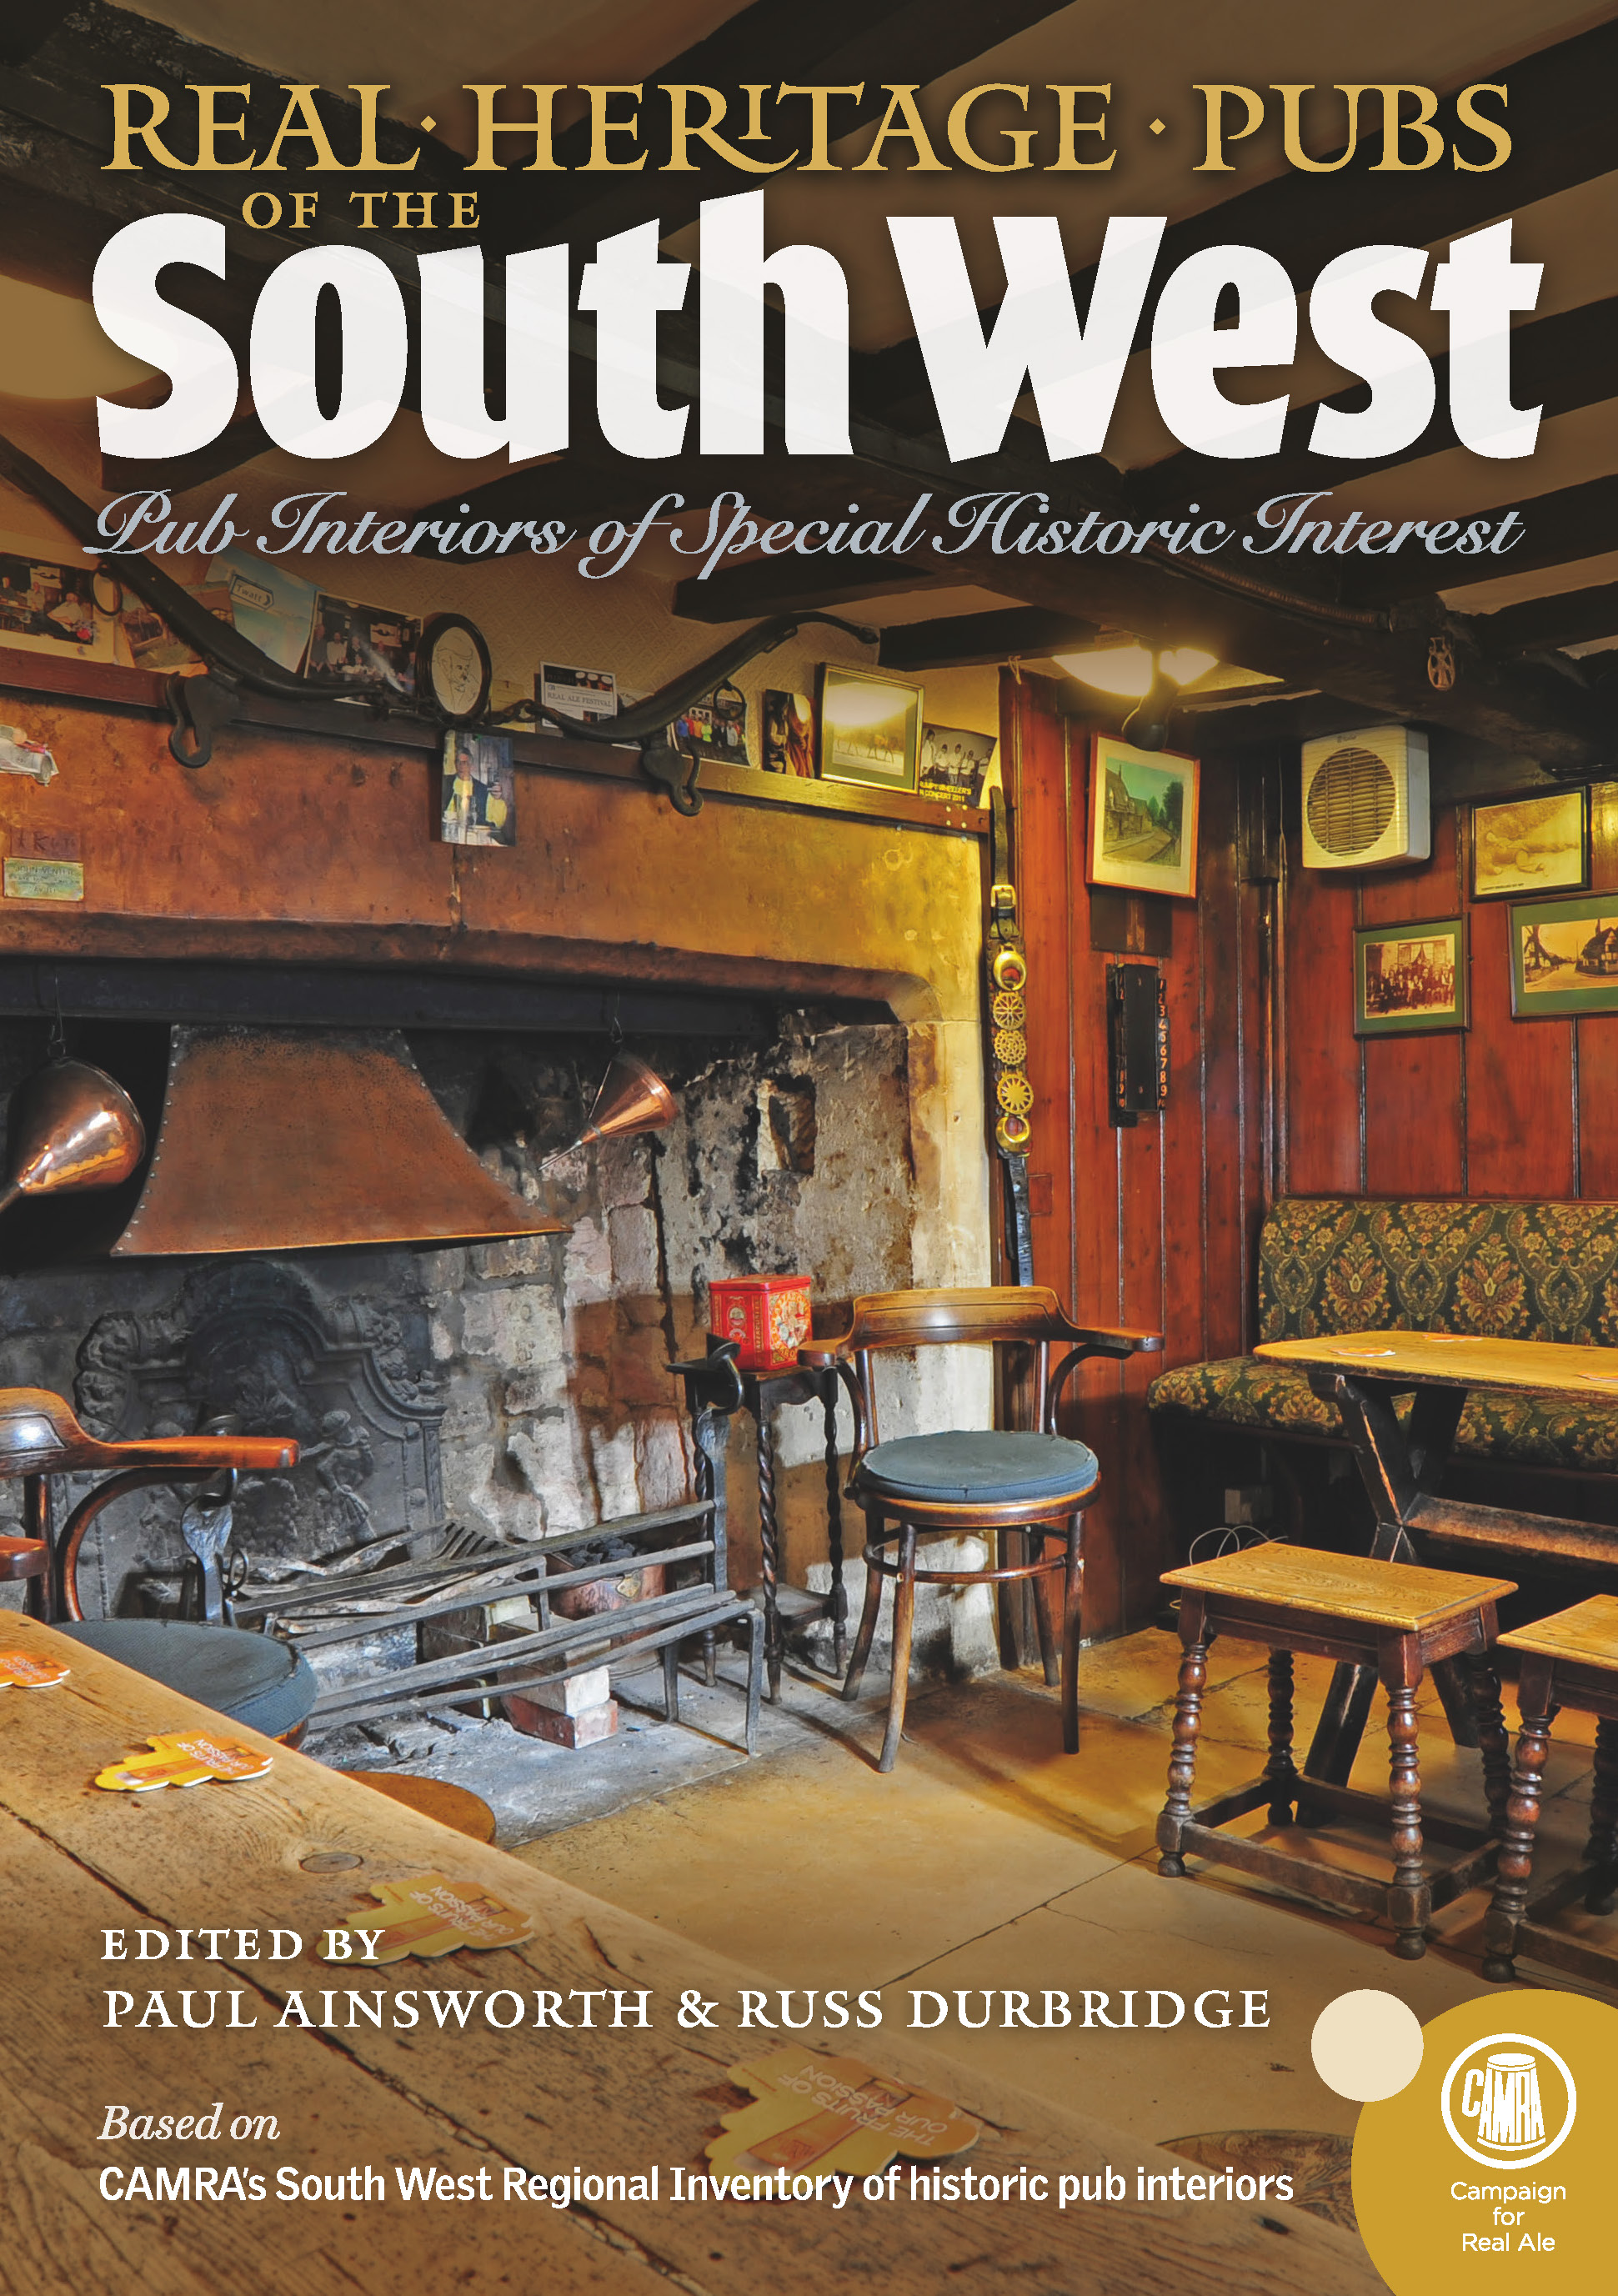 Real Heritage Pubs of the Southwest